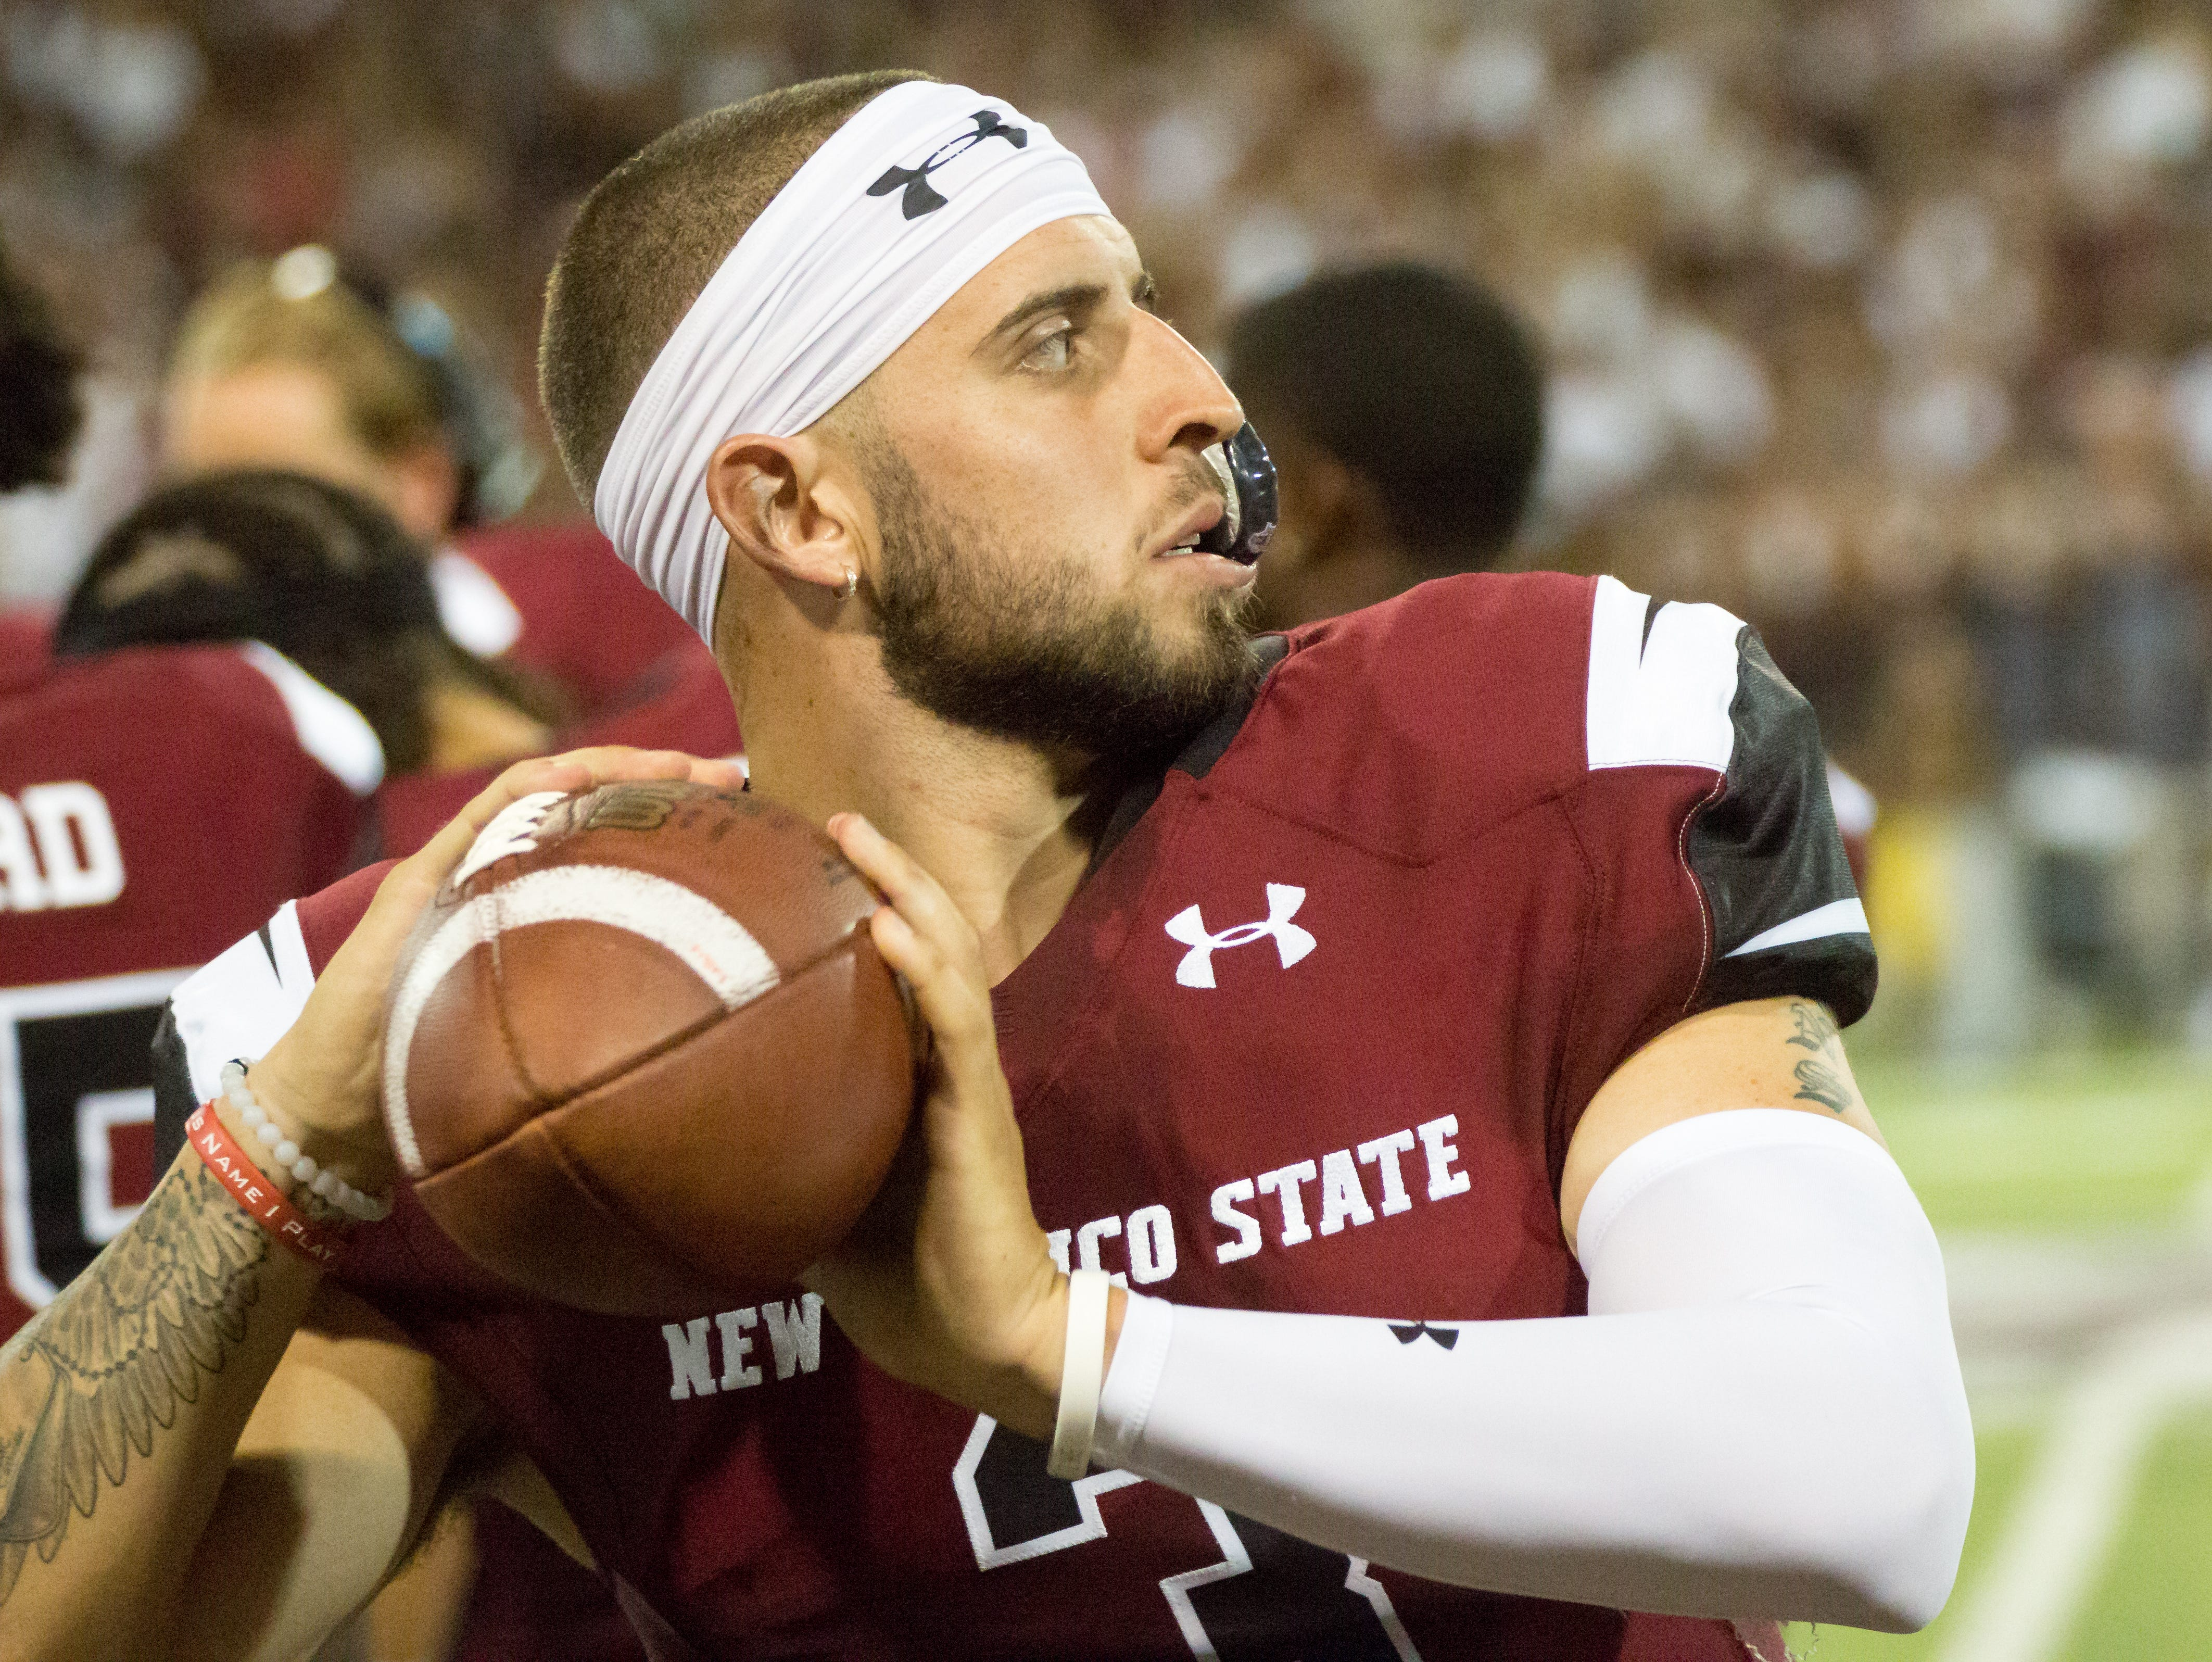 NMSU quarterback Matt Romero warms up on the sidelines on Saturday, August 25, 2018, during the NMSU/Wyoming game at the Aggie Memorial Stadium.